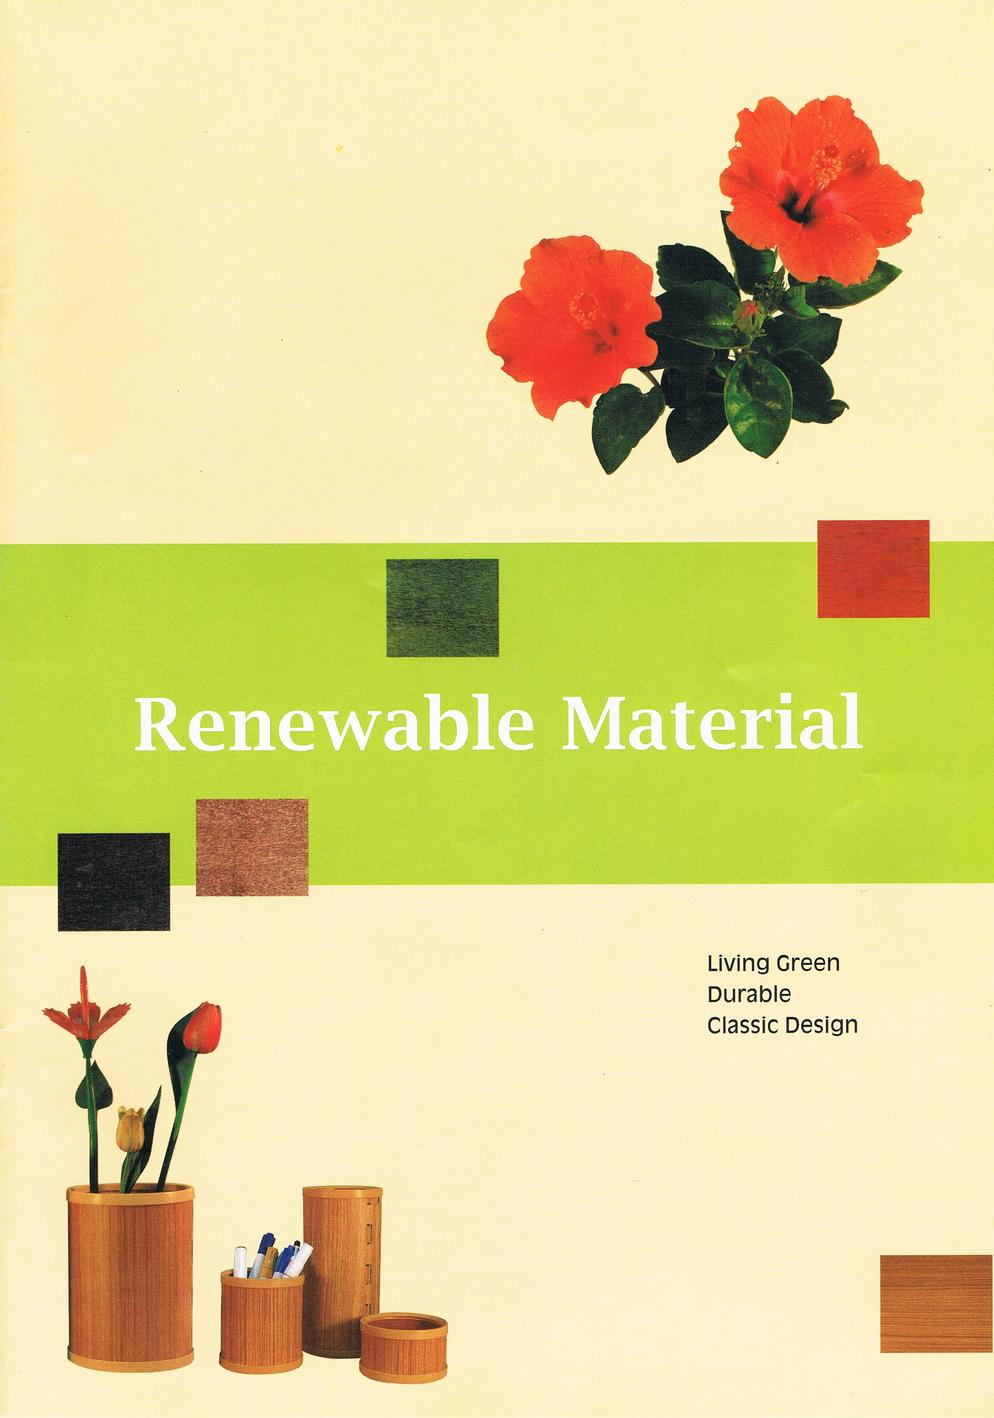 Renewable Material